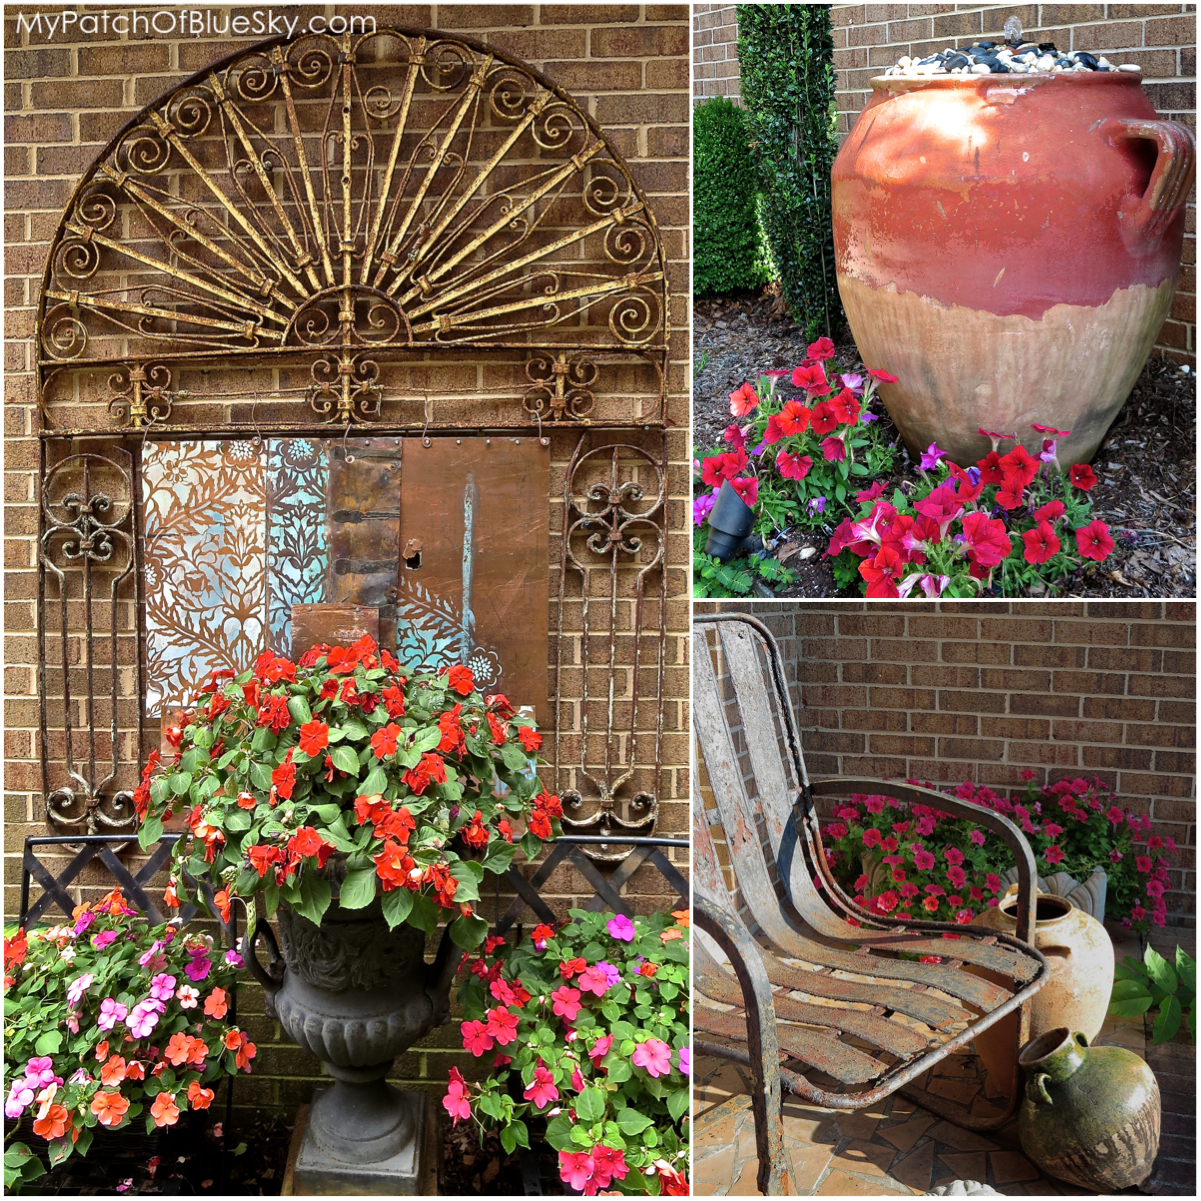 Front courtyard with art and flowers.